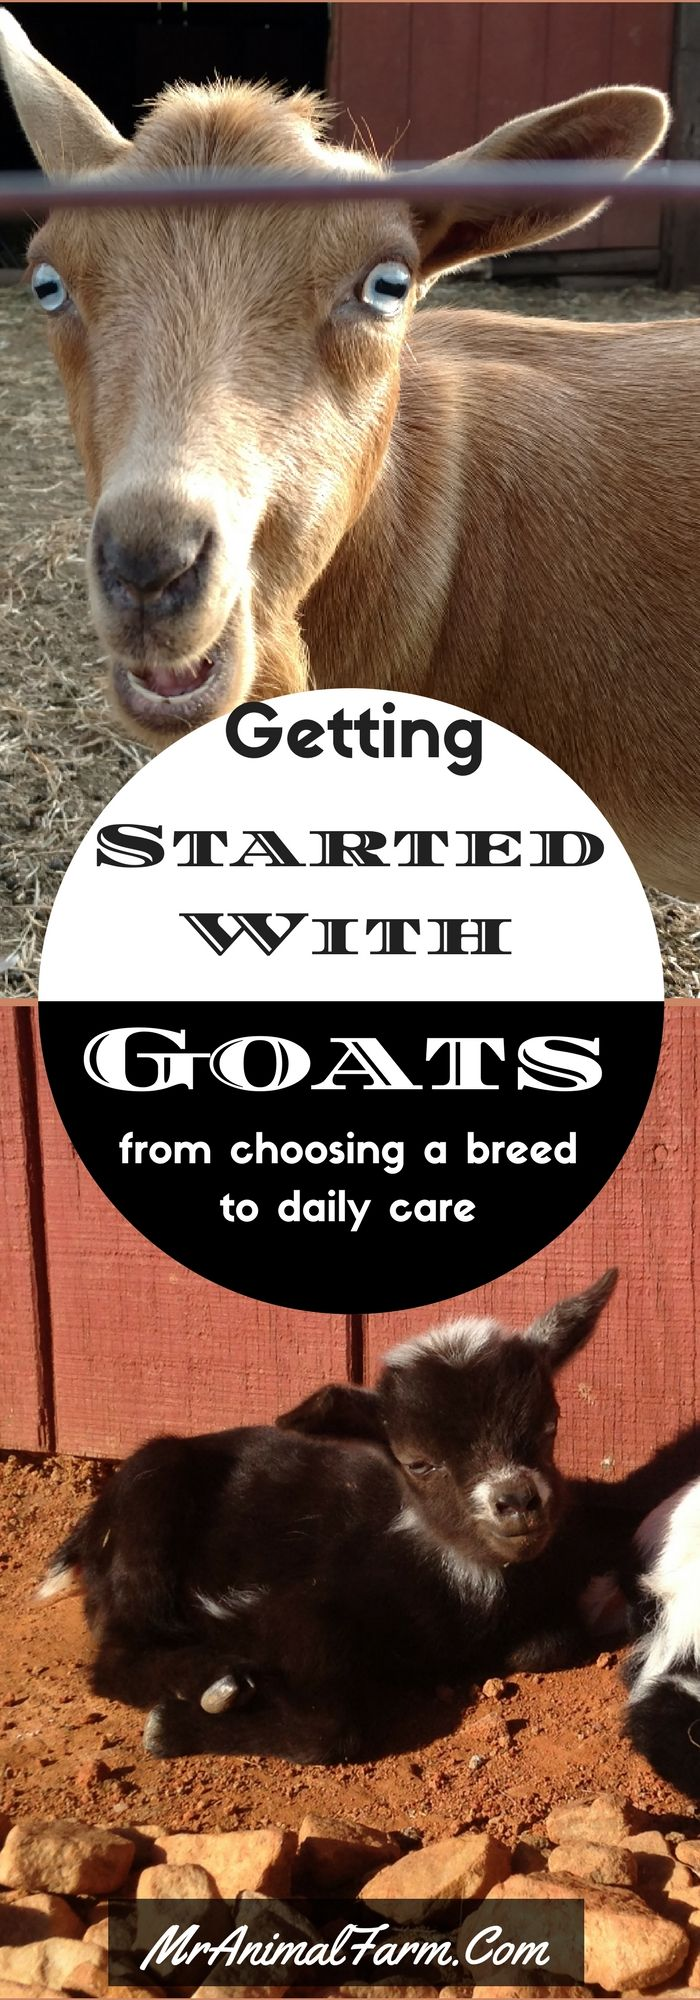 raising goats ecourse the basics from choosing your goat through daily care ziege. Black Bedroom Furniture Sets. Home Design Ideas